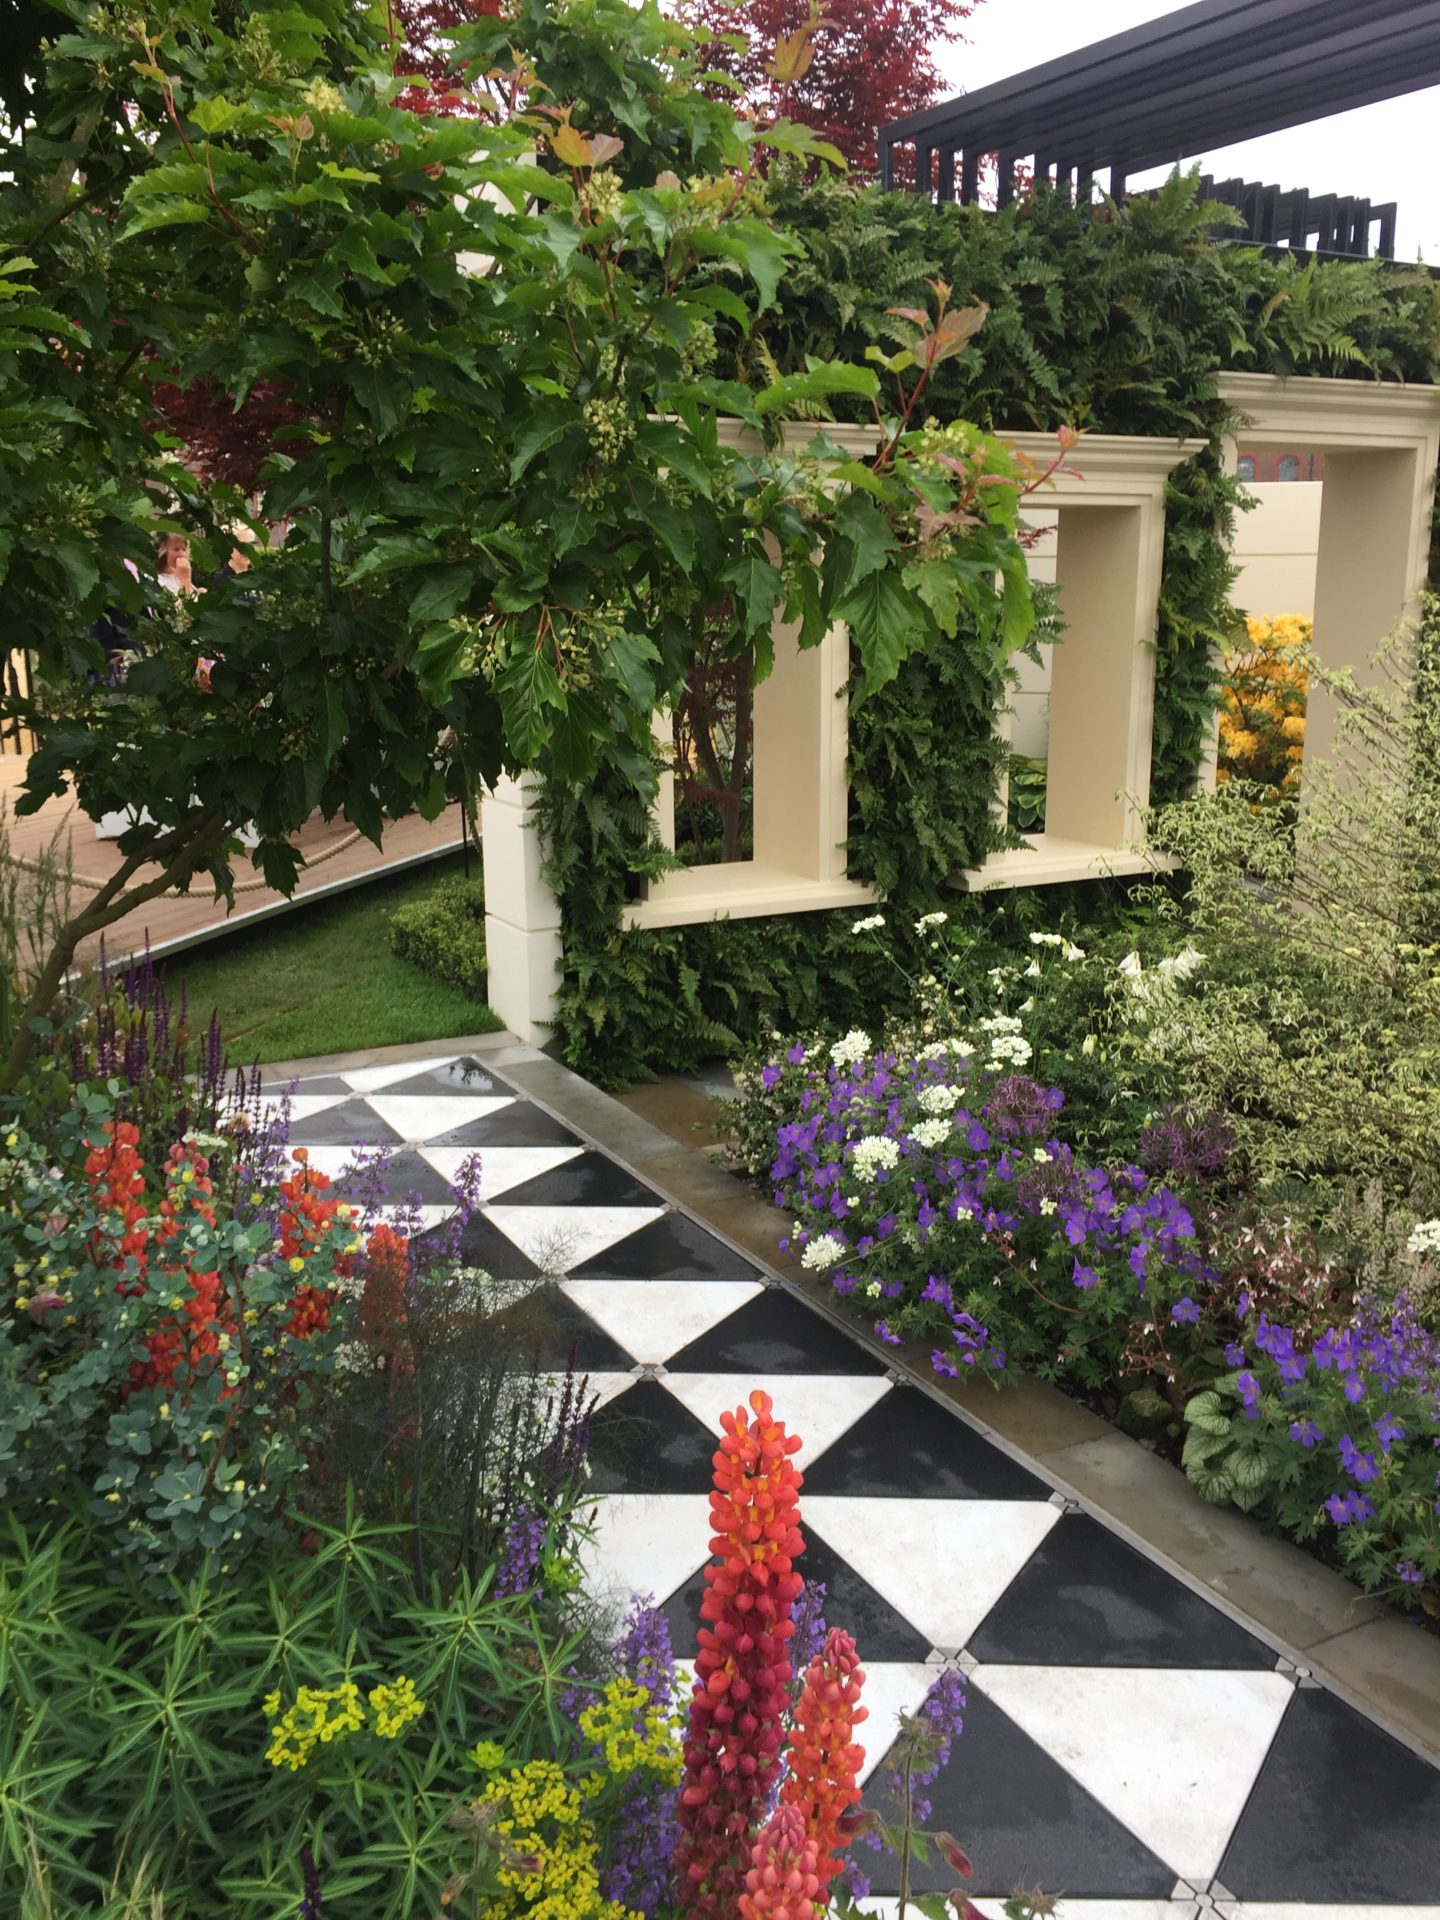 A tiled path in one of the show gardens.